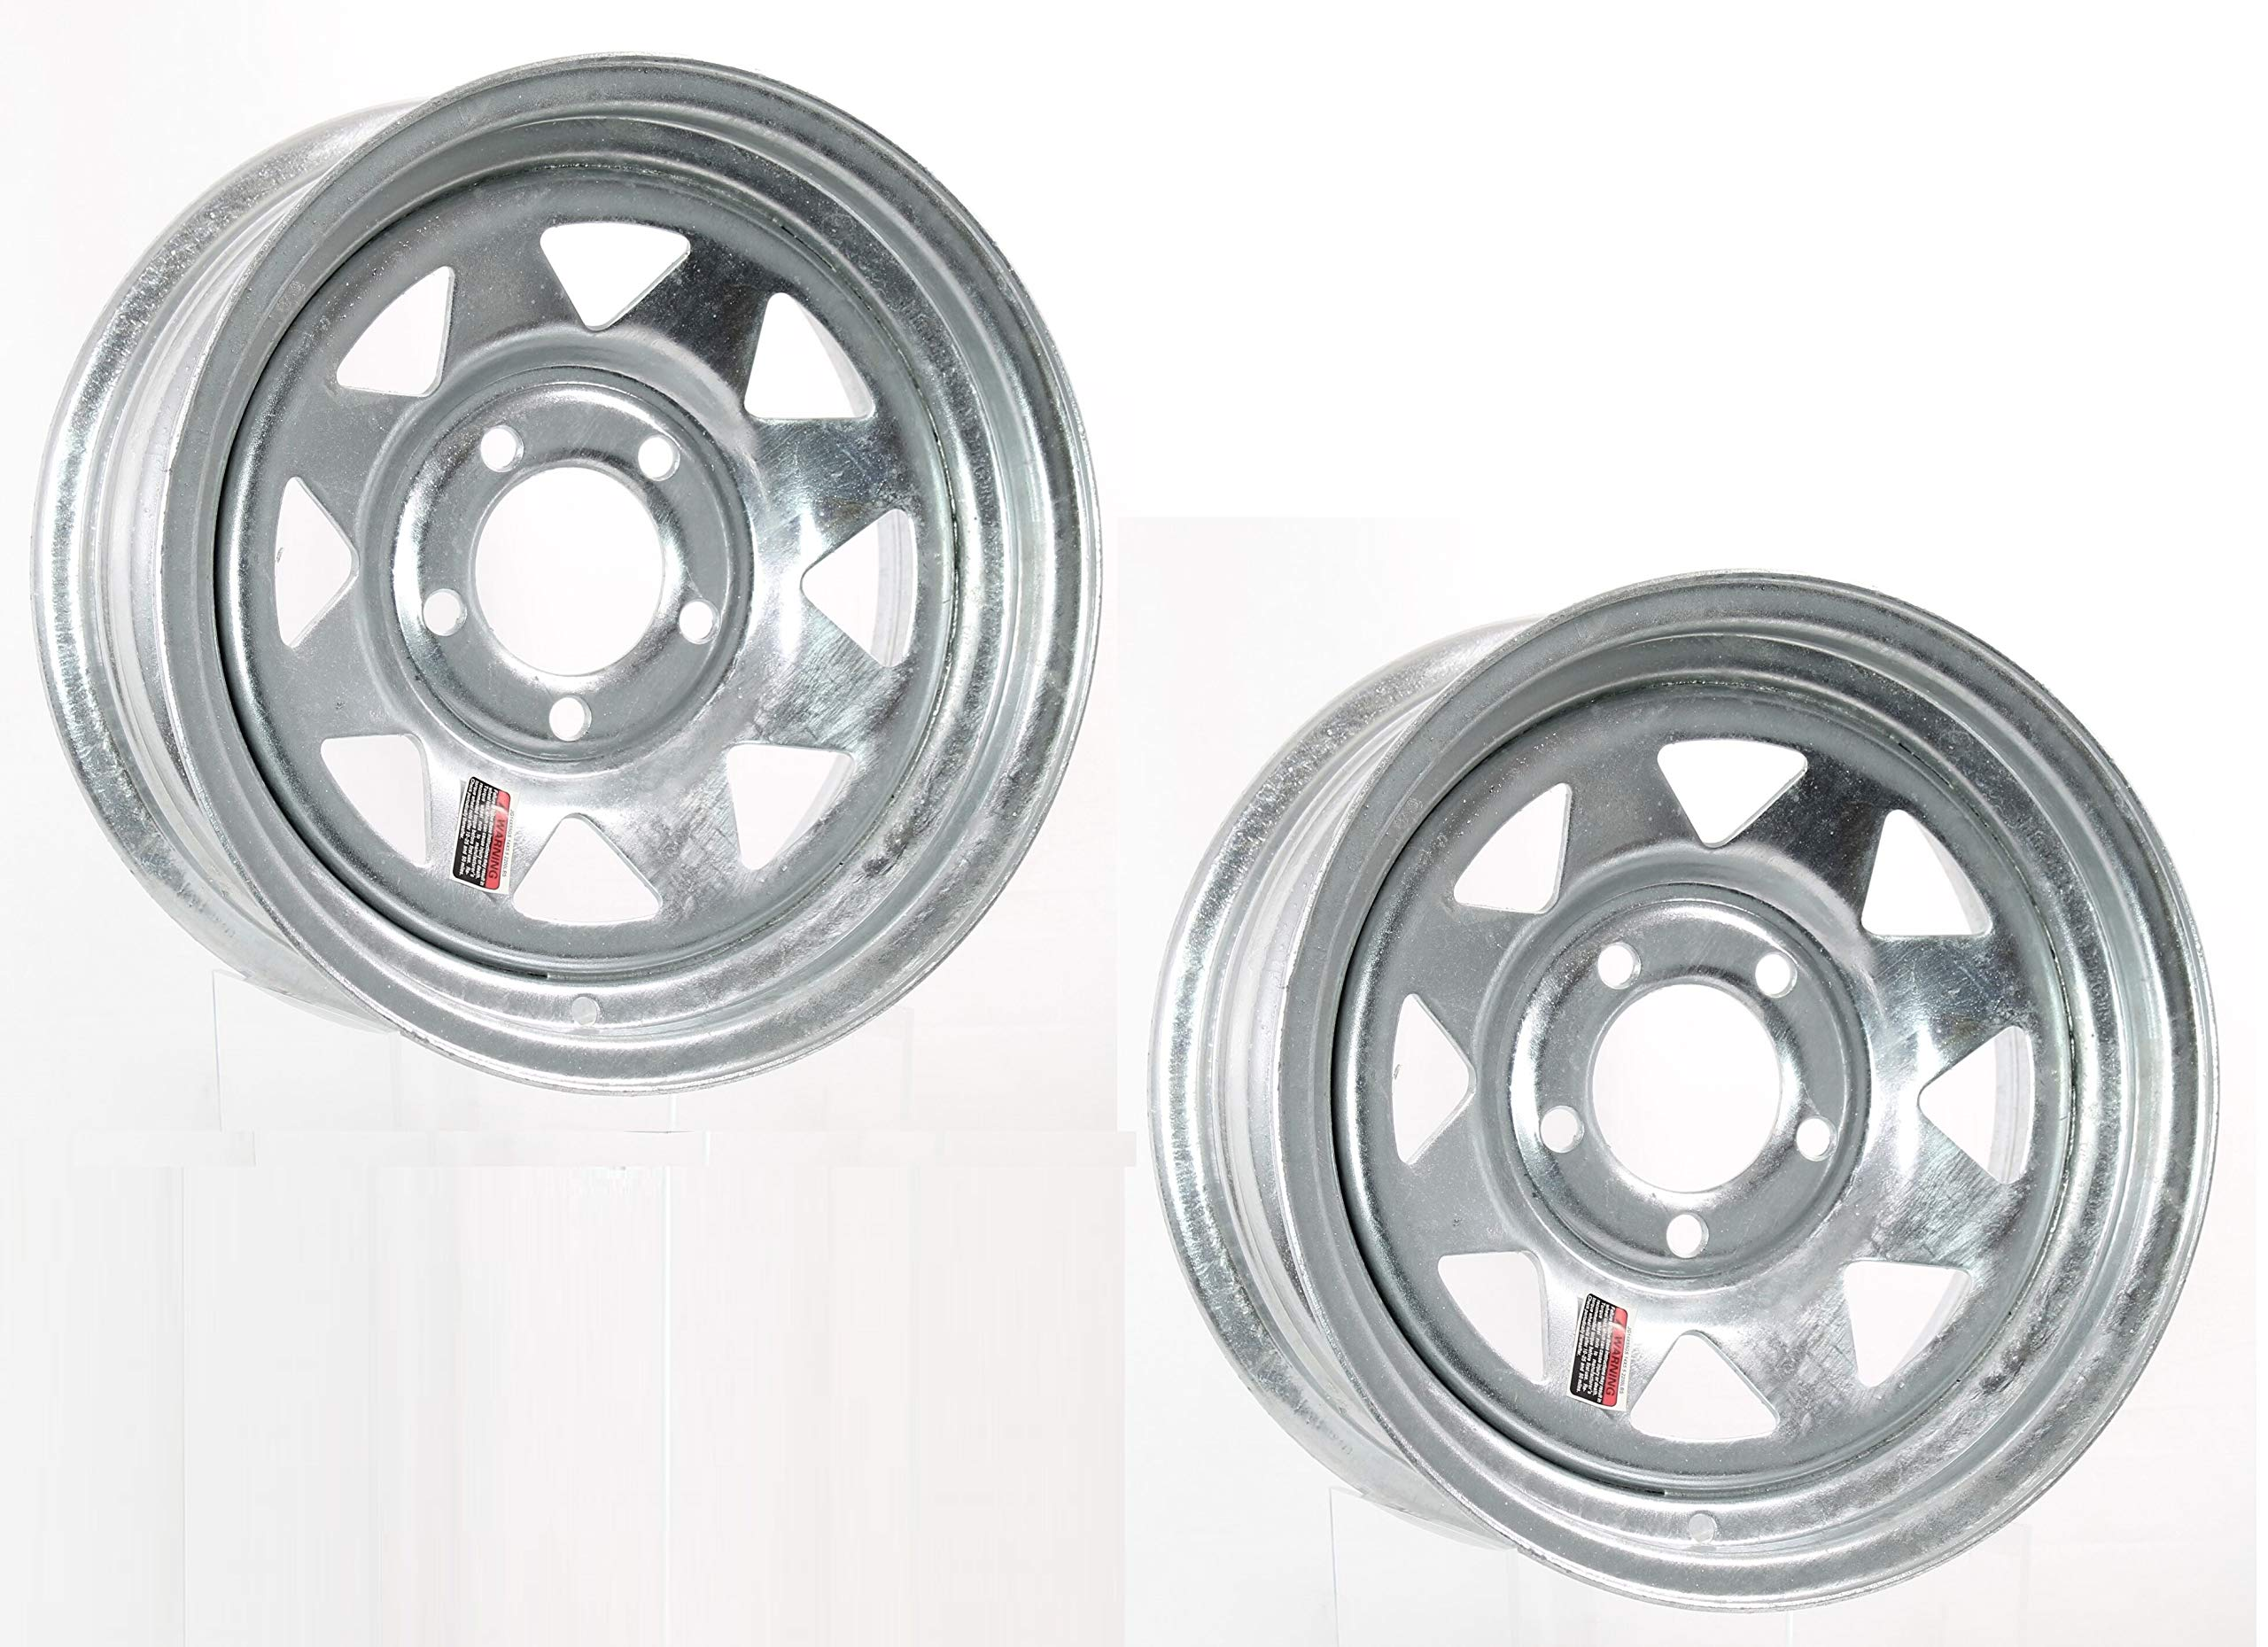 2-Pack Boat Trailer Rims Wheels 14 in. 14X6 5 Lug Hole Bolt Galvanized Spoke by Eco Trailer Tire and Wheel